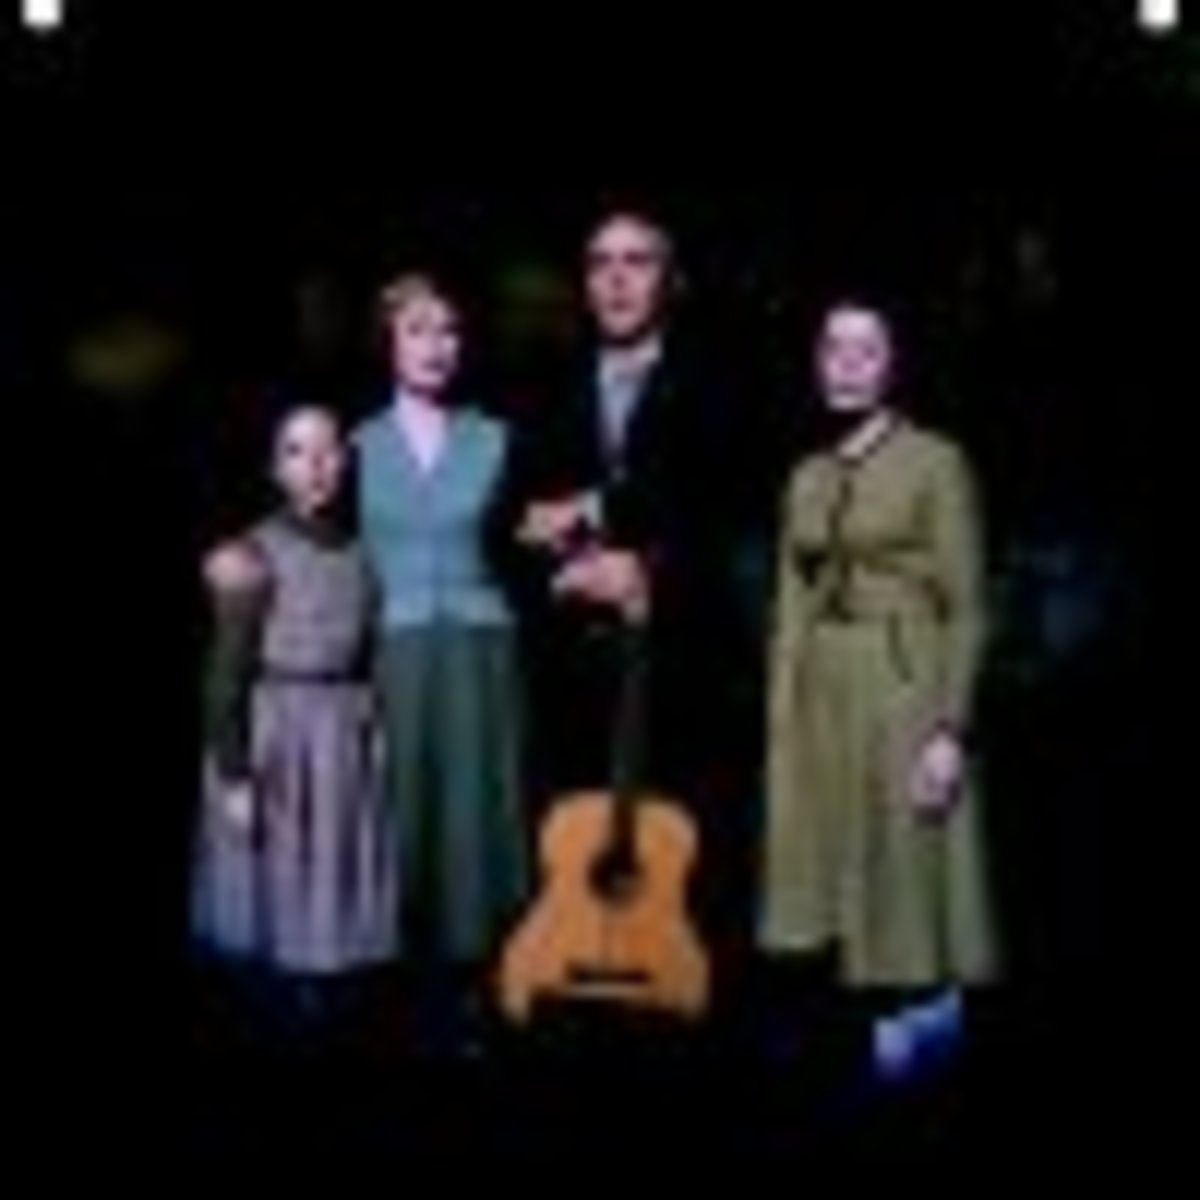 The Vontrap family singers, The Sound of Music,      imdb.com